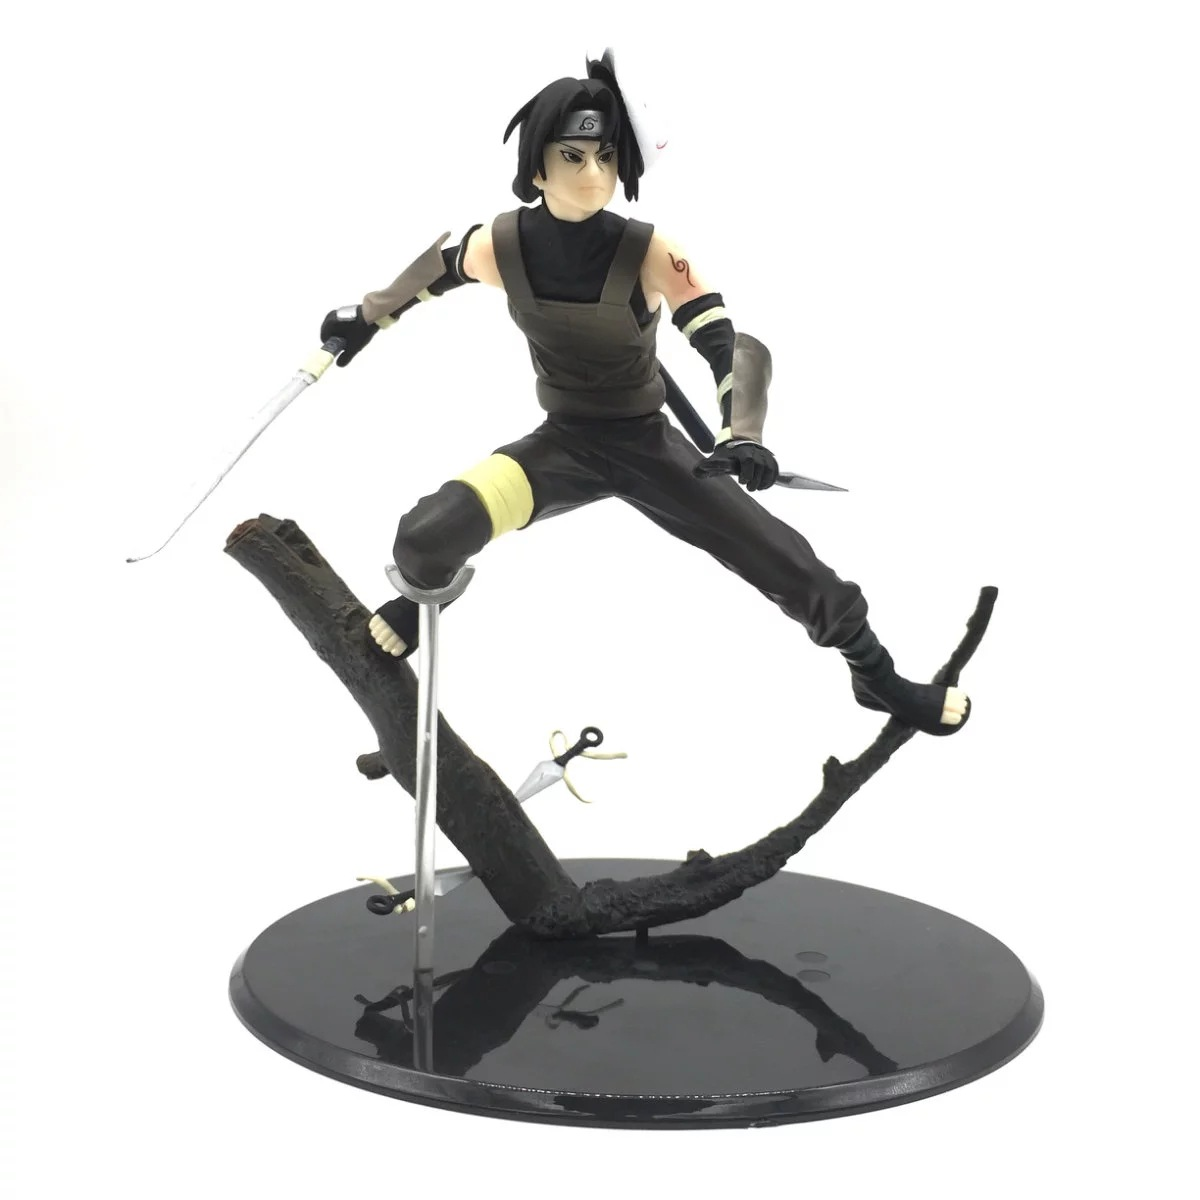 SAINTGI Naruto Shippuden UChiha Itachi Anbu 20cm PVC Action Figure Model Toys Doll in Box Gift For Boy Anime Collection Toy pu short wallet w colorful printing of naruto shippuden uchiha itachi